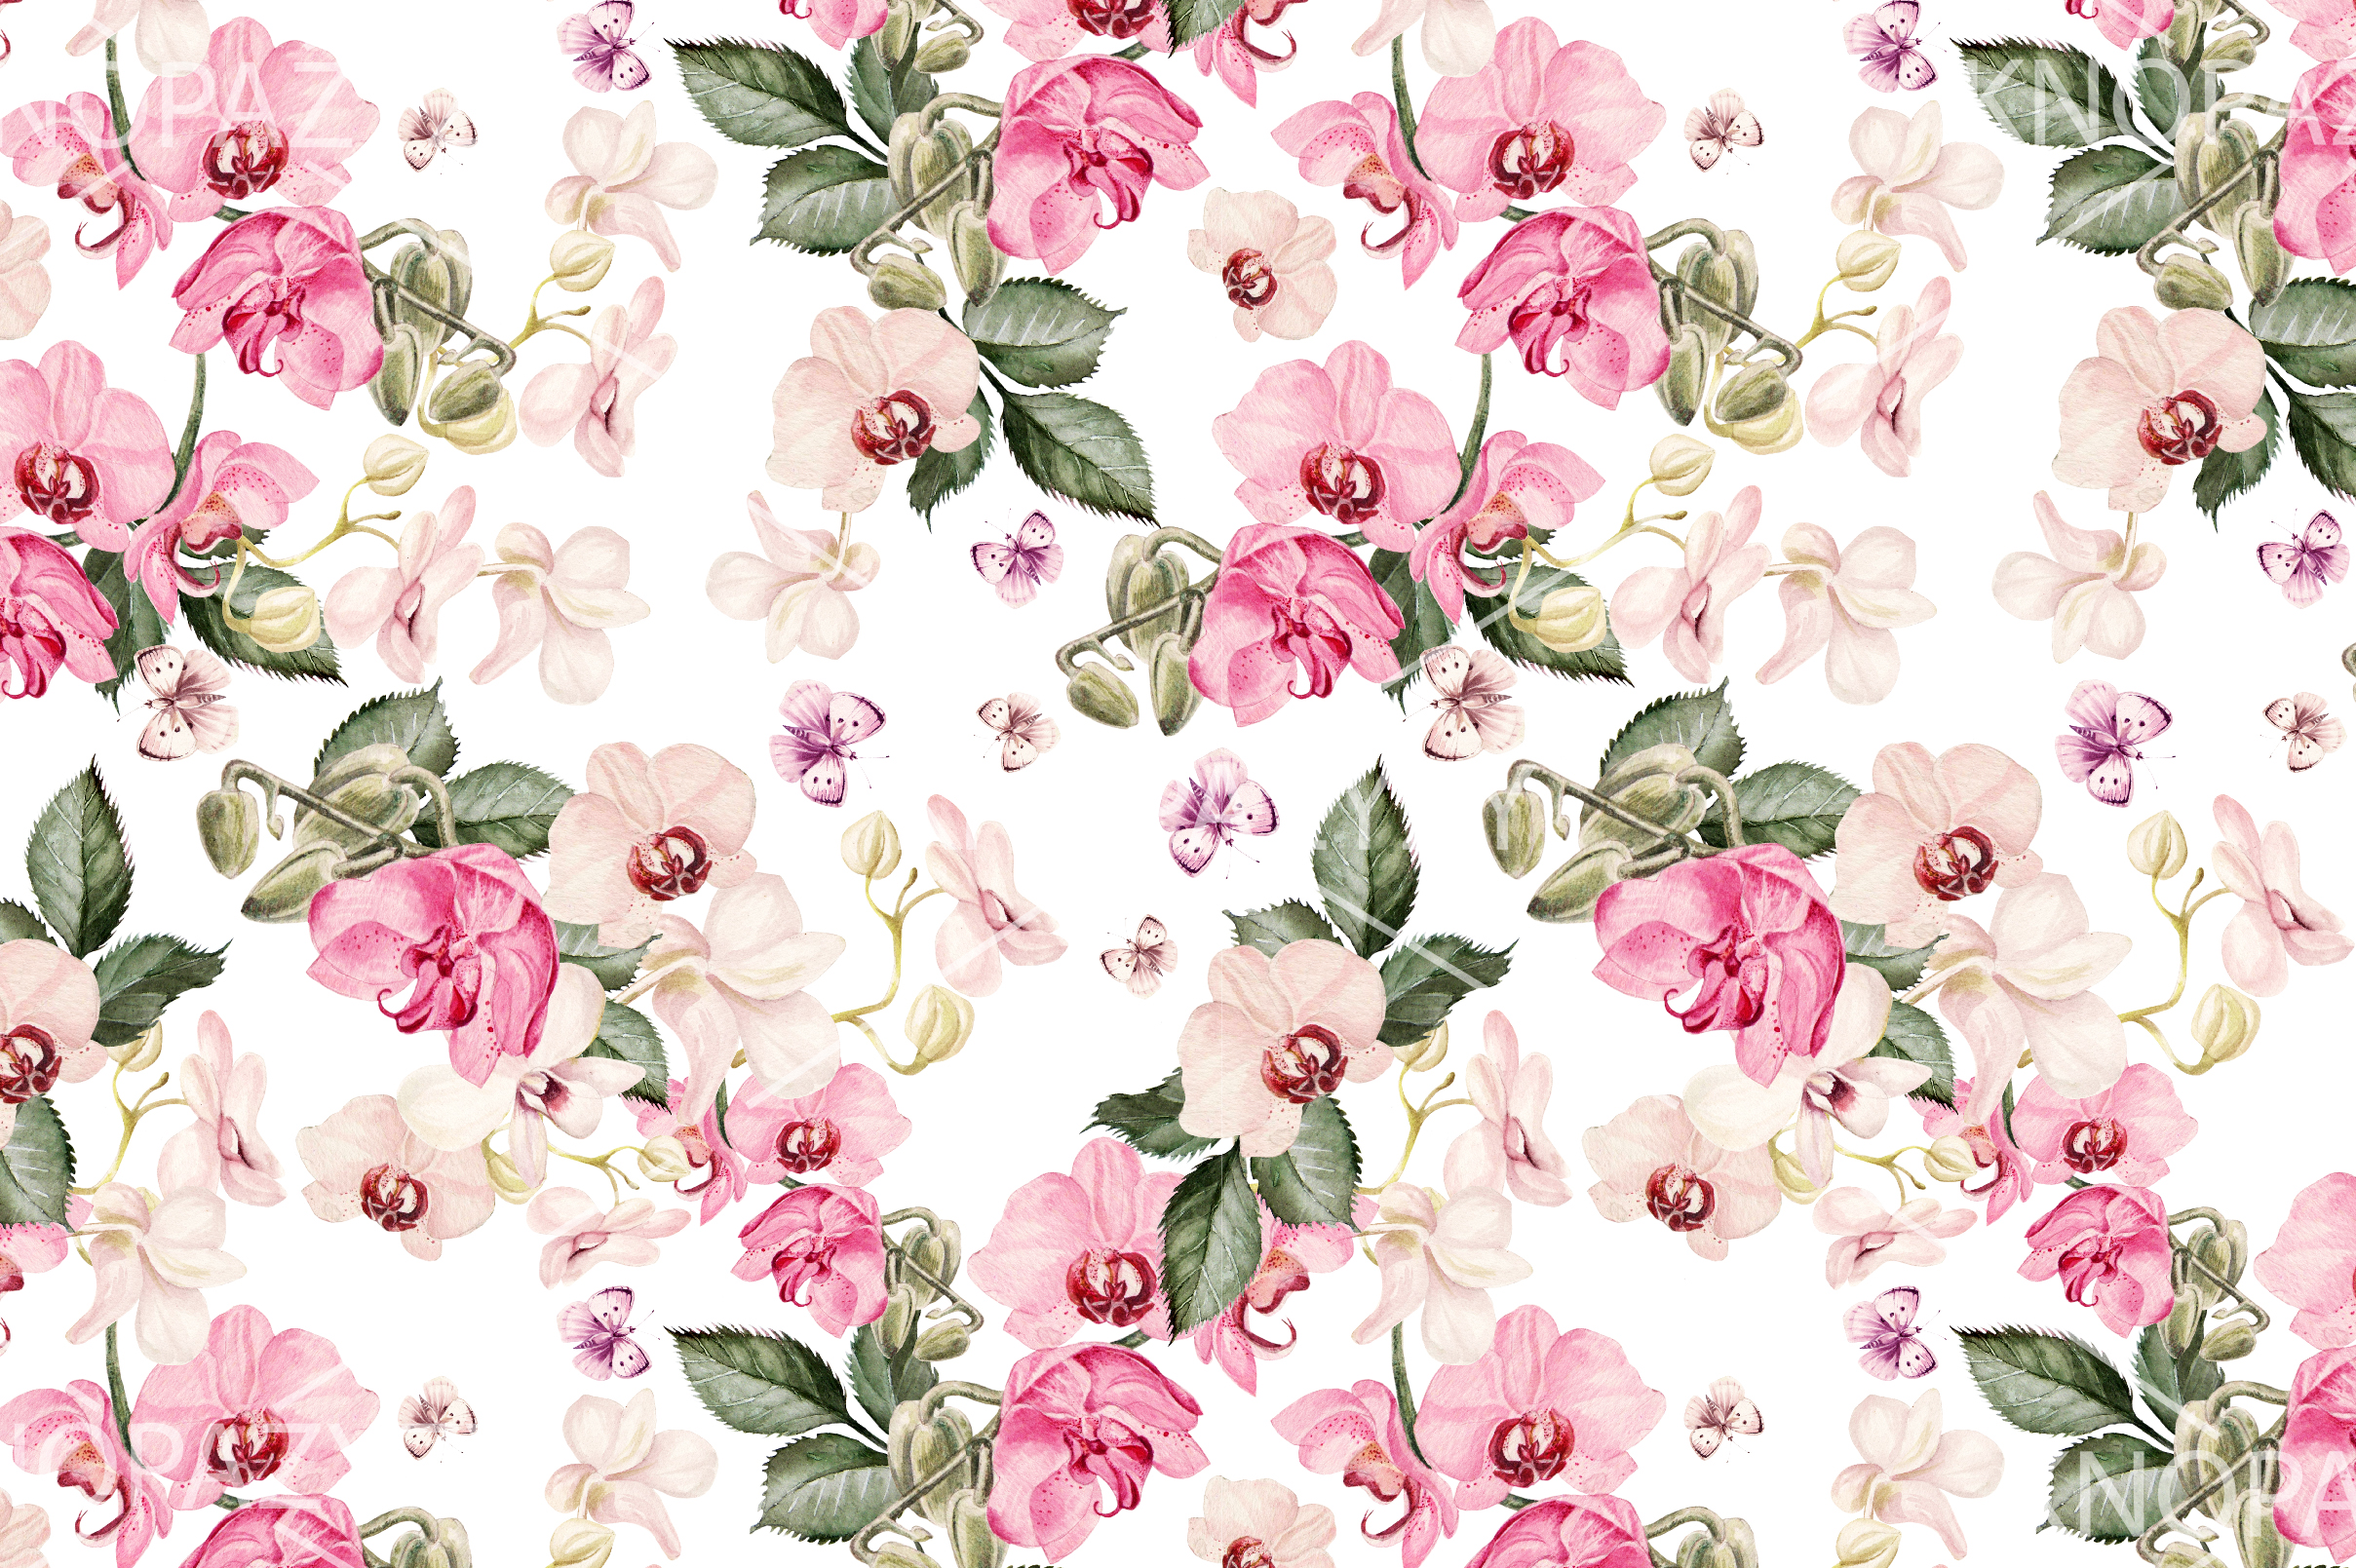 10 Hand Drawn Watercolor Pattern example image 2